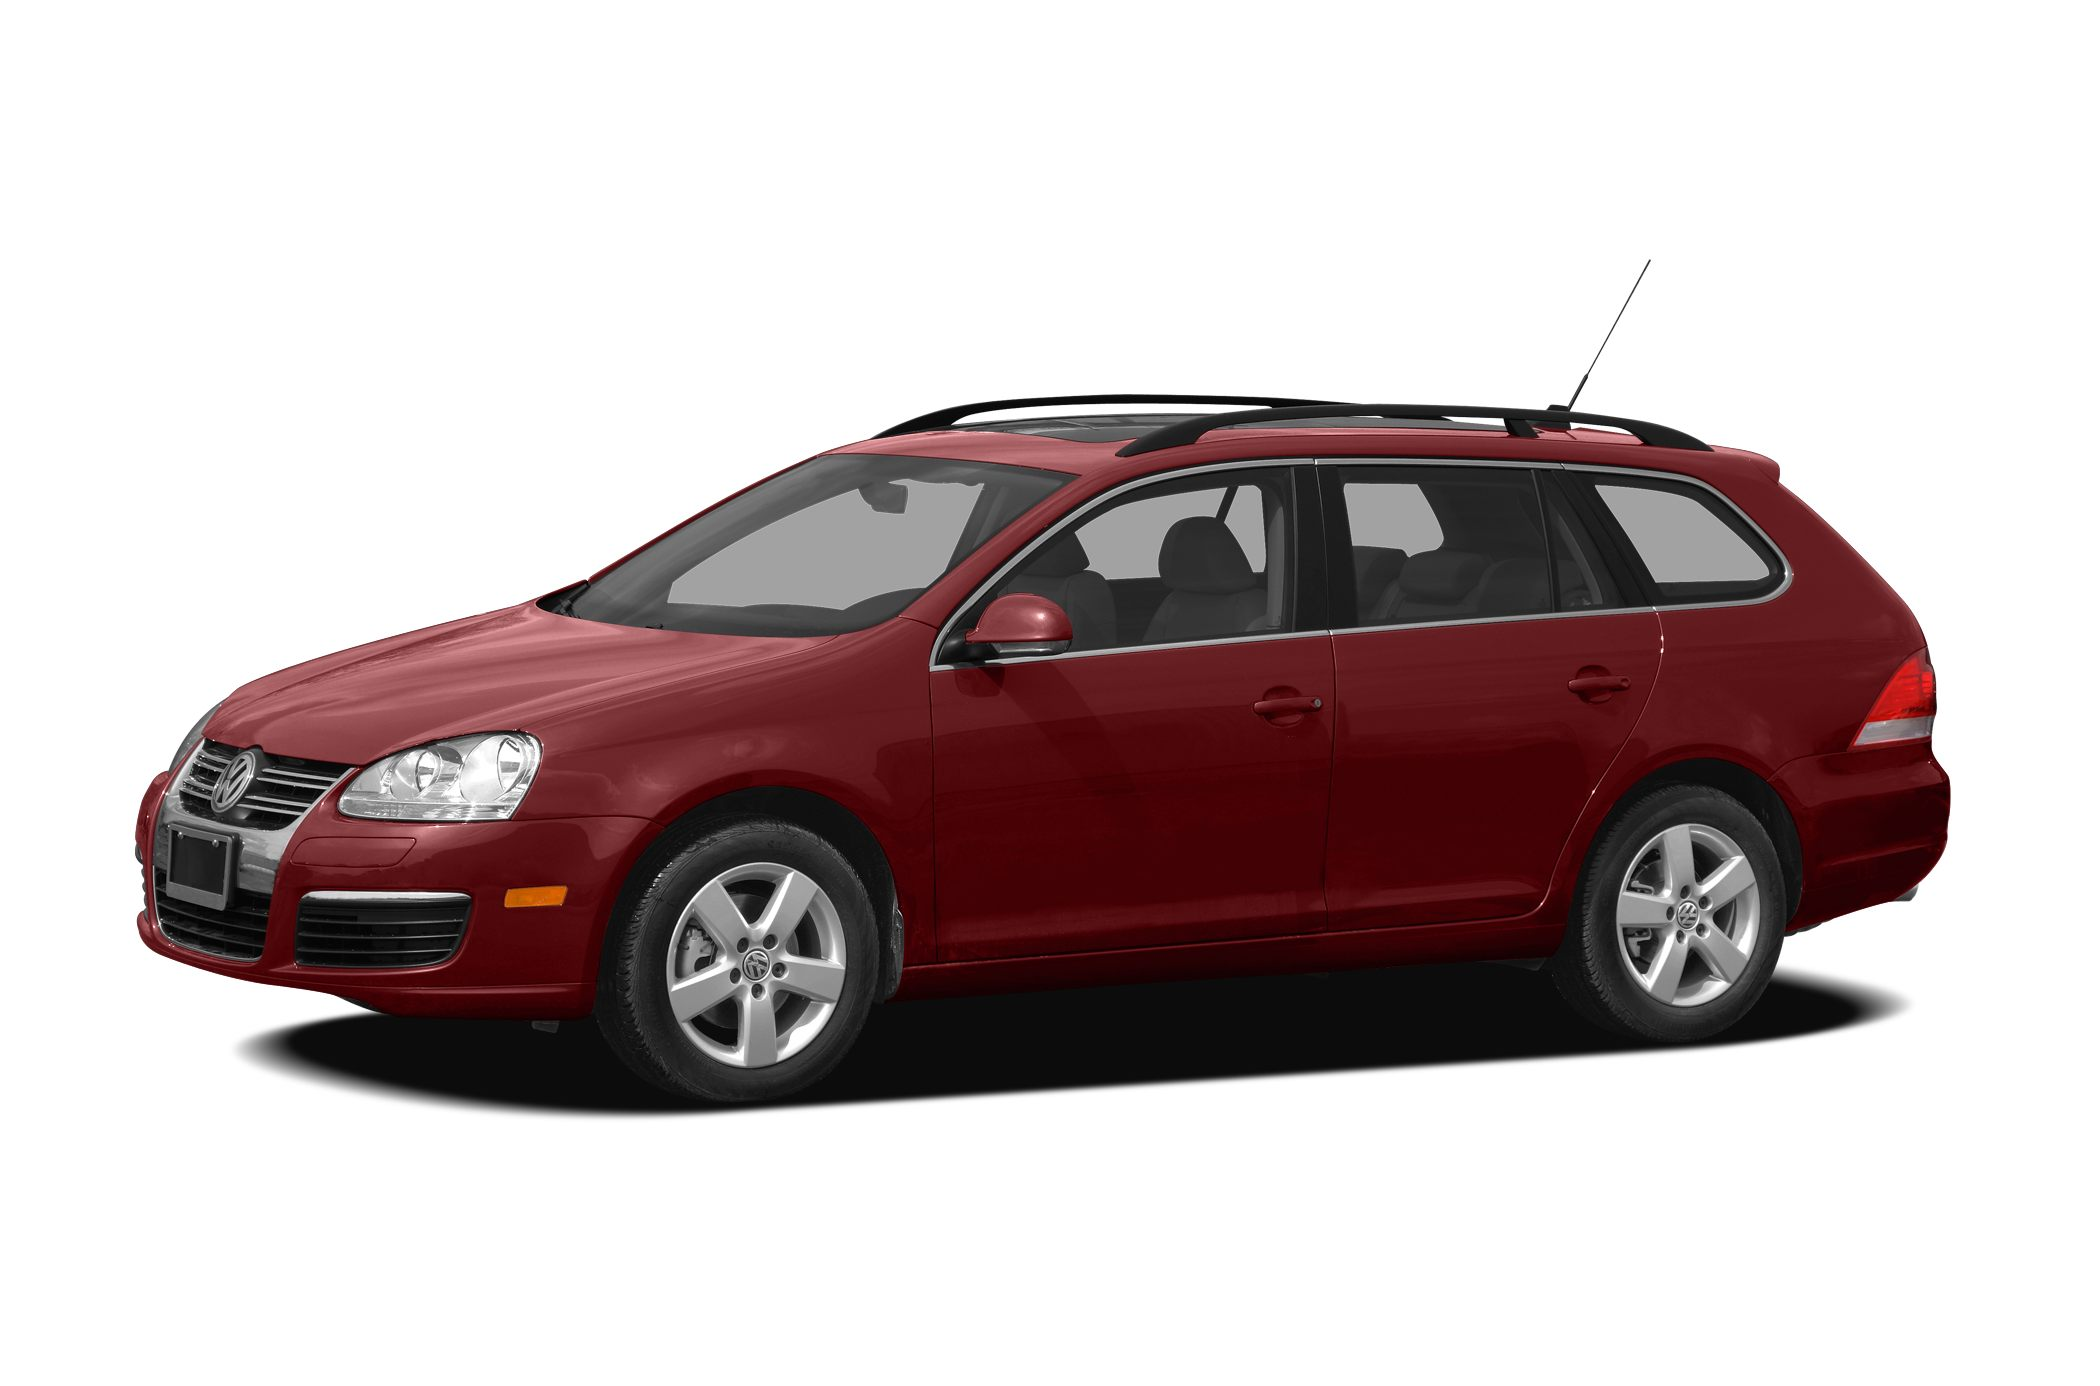 2009 Volkswagen Jetta 2.5 S SportWagen Wagon for sale in Lynchburg for $10,937 with 53,571 miles